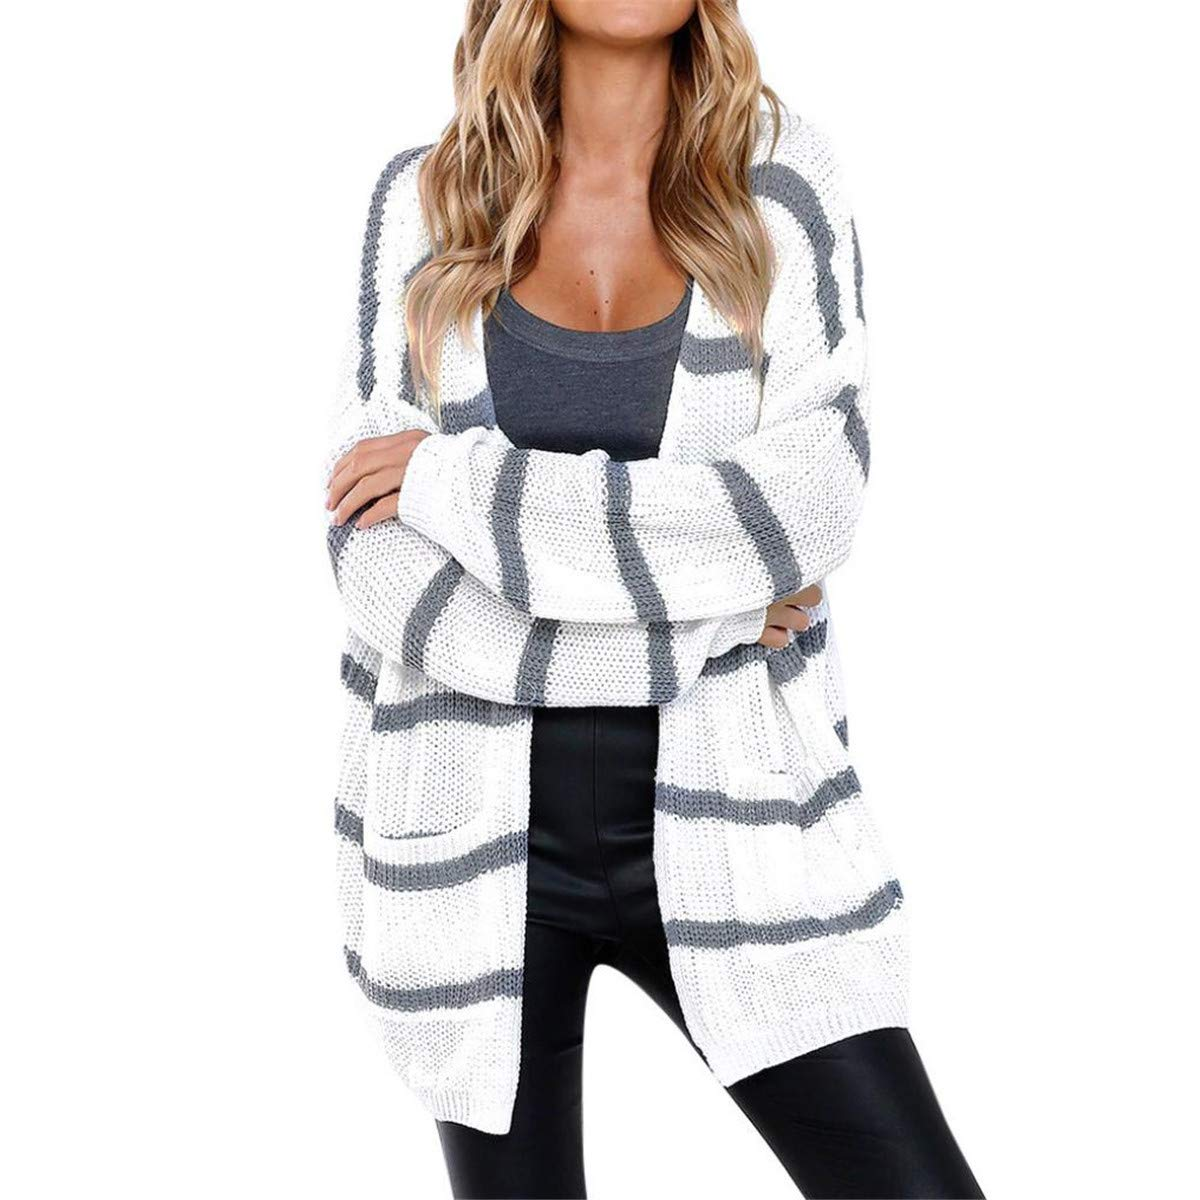 KESEELY Women Lightweight Cardigans Long Sleeve Striped Open Front Jumper Sweaters with Pocket Knitting Tops KESEE Clothes KESEELY_Coat